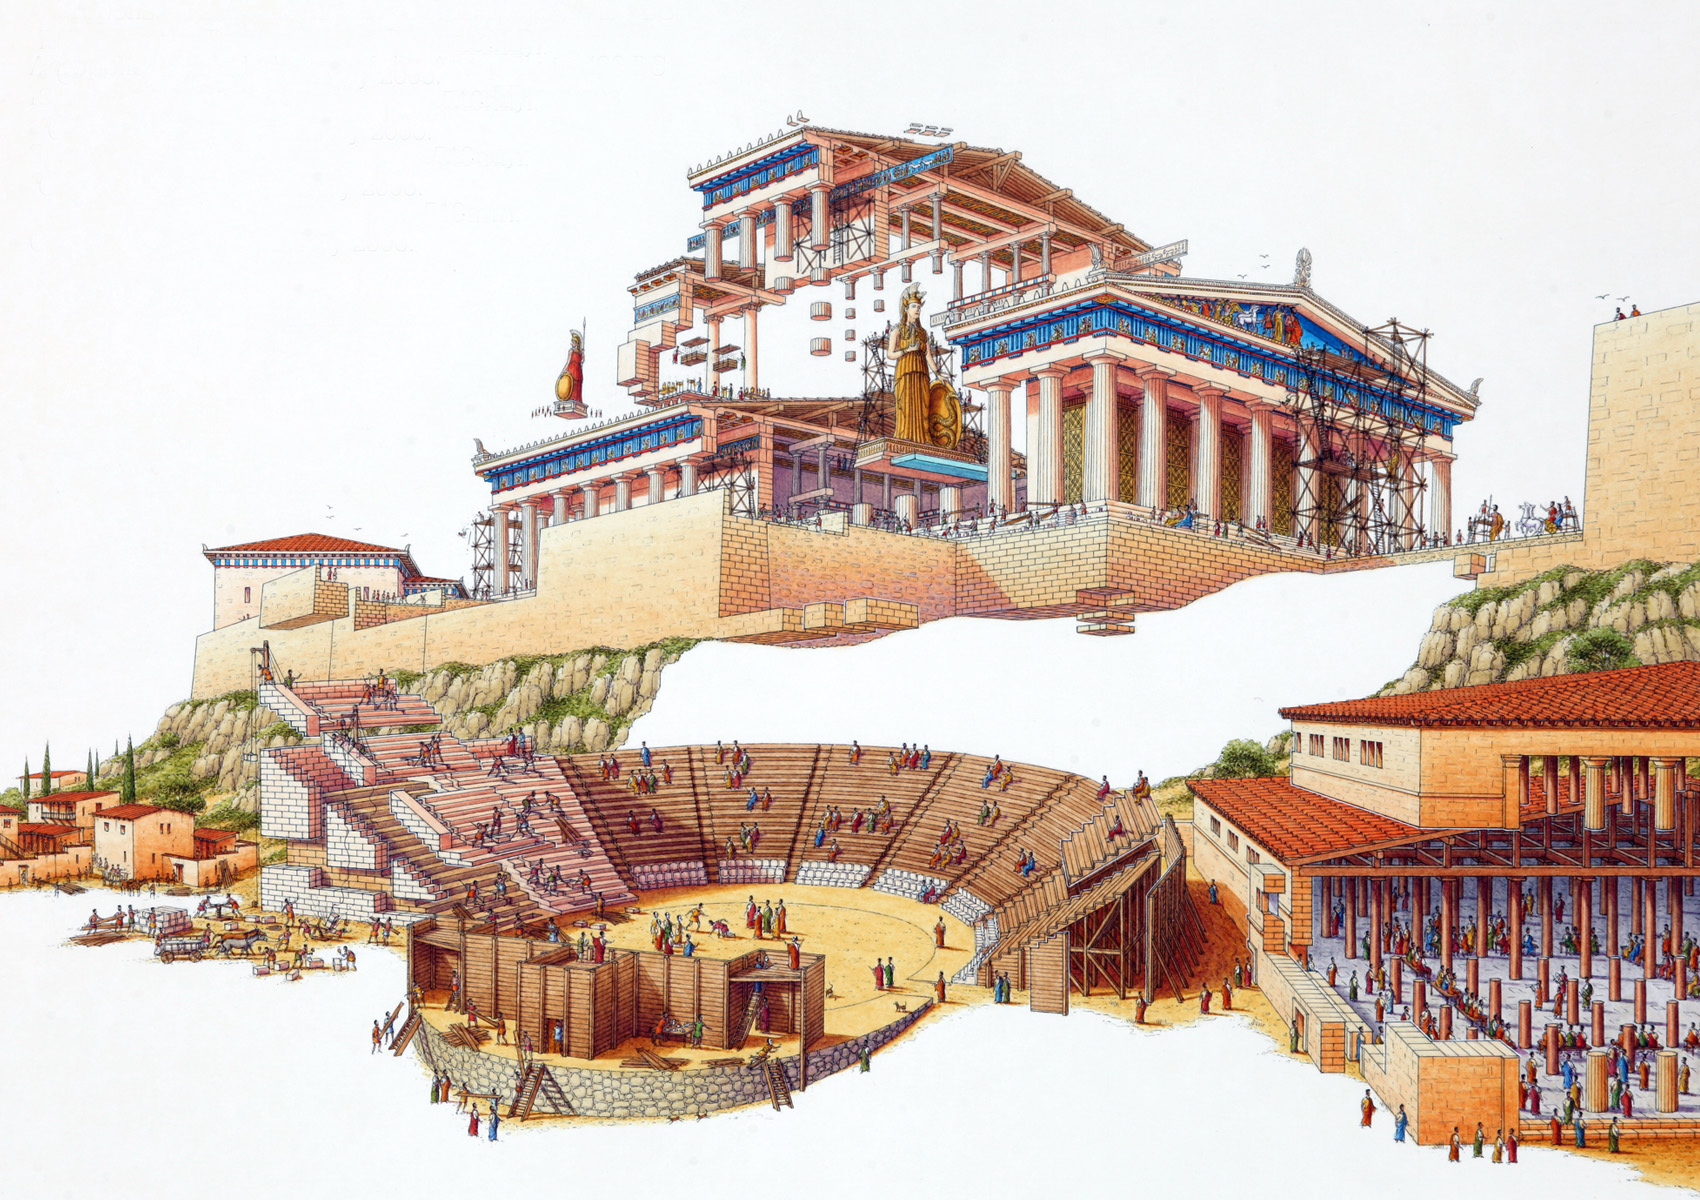 athens rome planning and structure essay School of athens essays: over home » essay » school of athens stanza della segnatura at the vatican palace in rome 4 / 1087: school of athens.